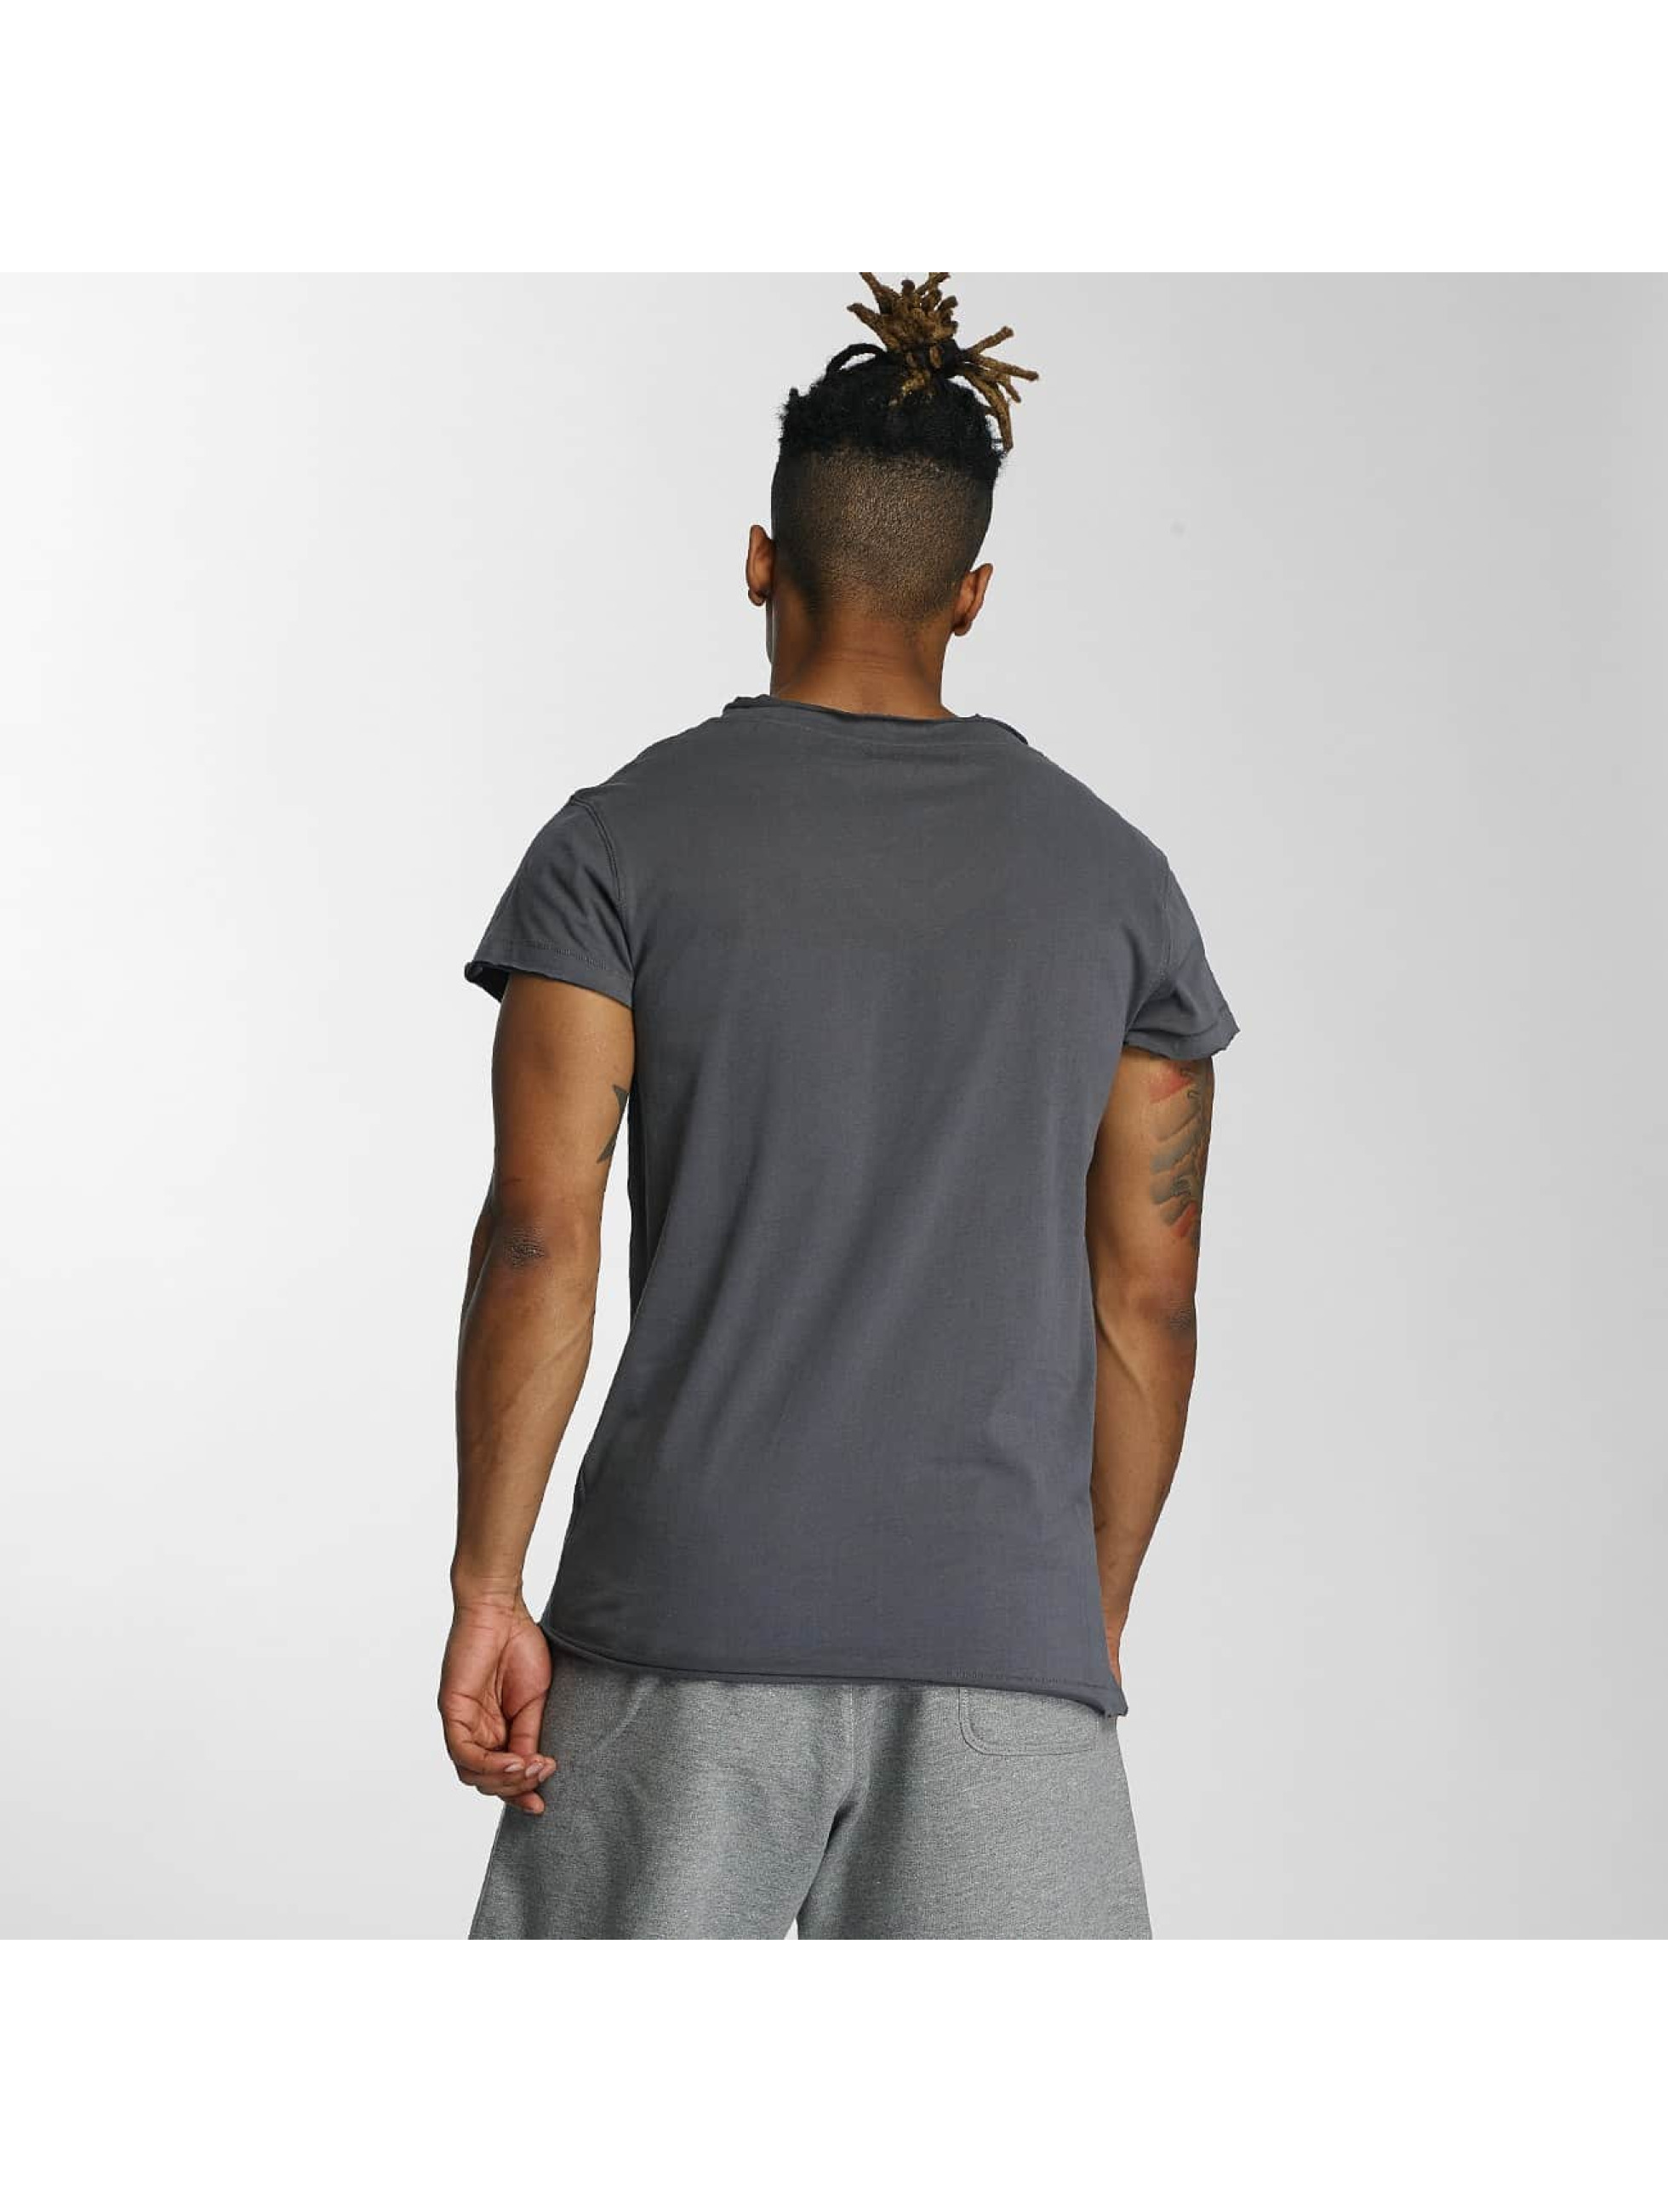 Devilsfruit T-Shirt Open gray